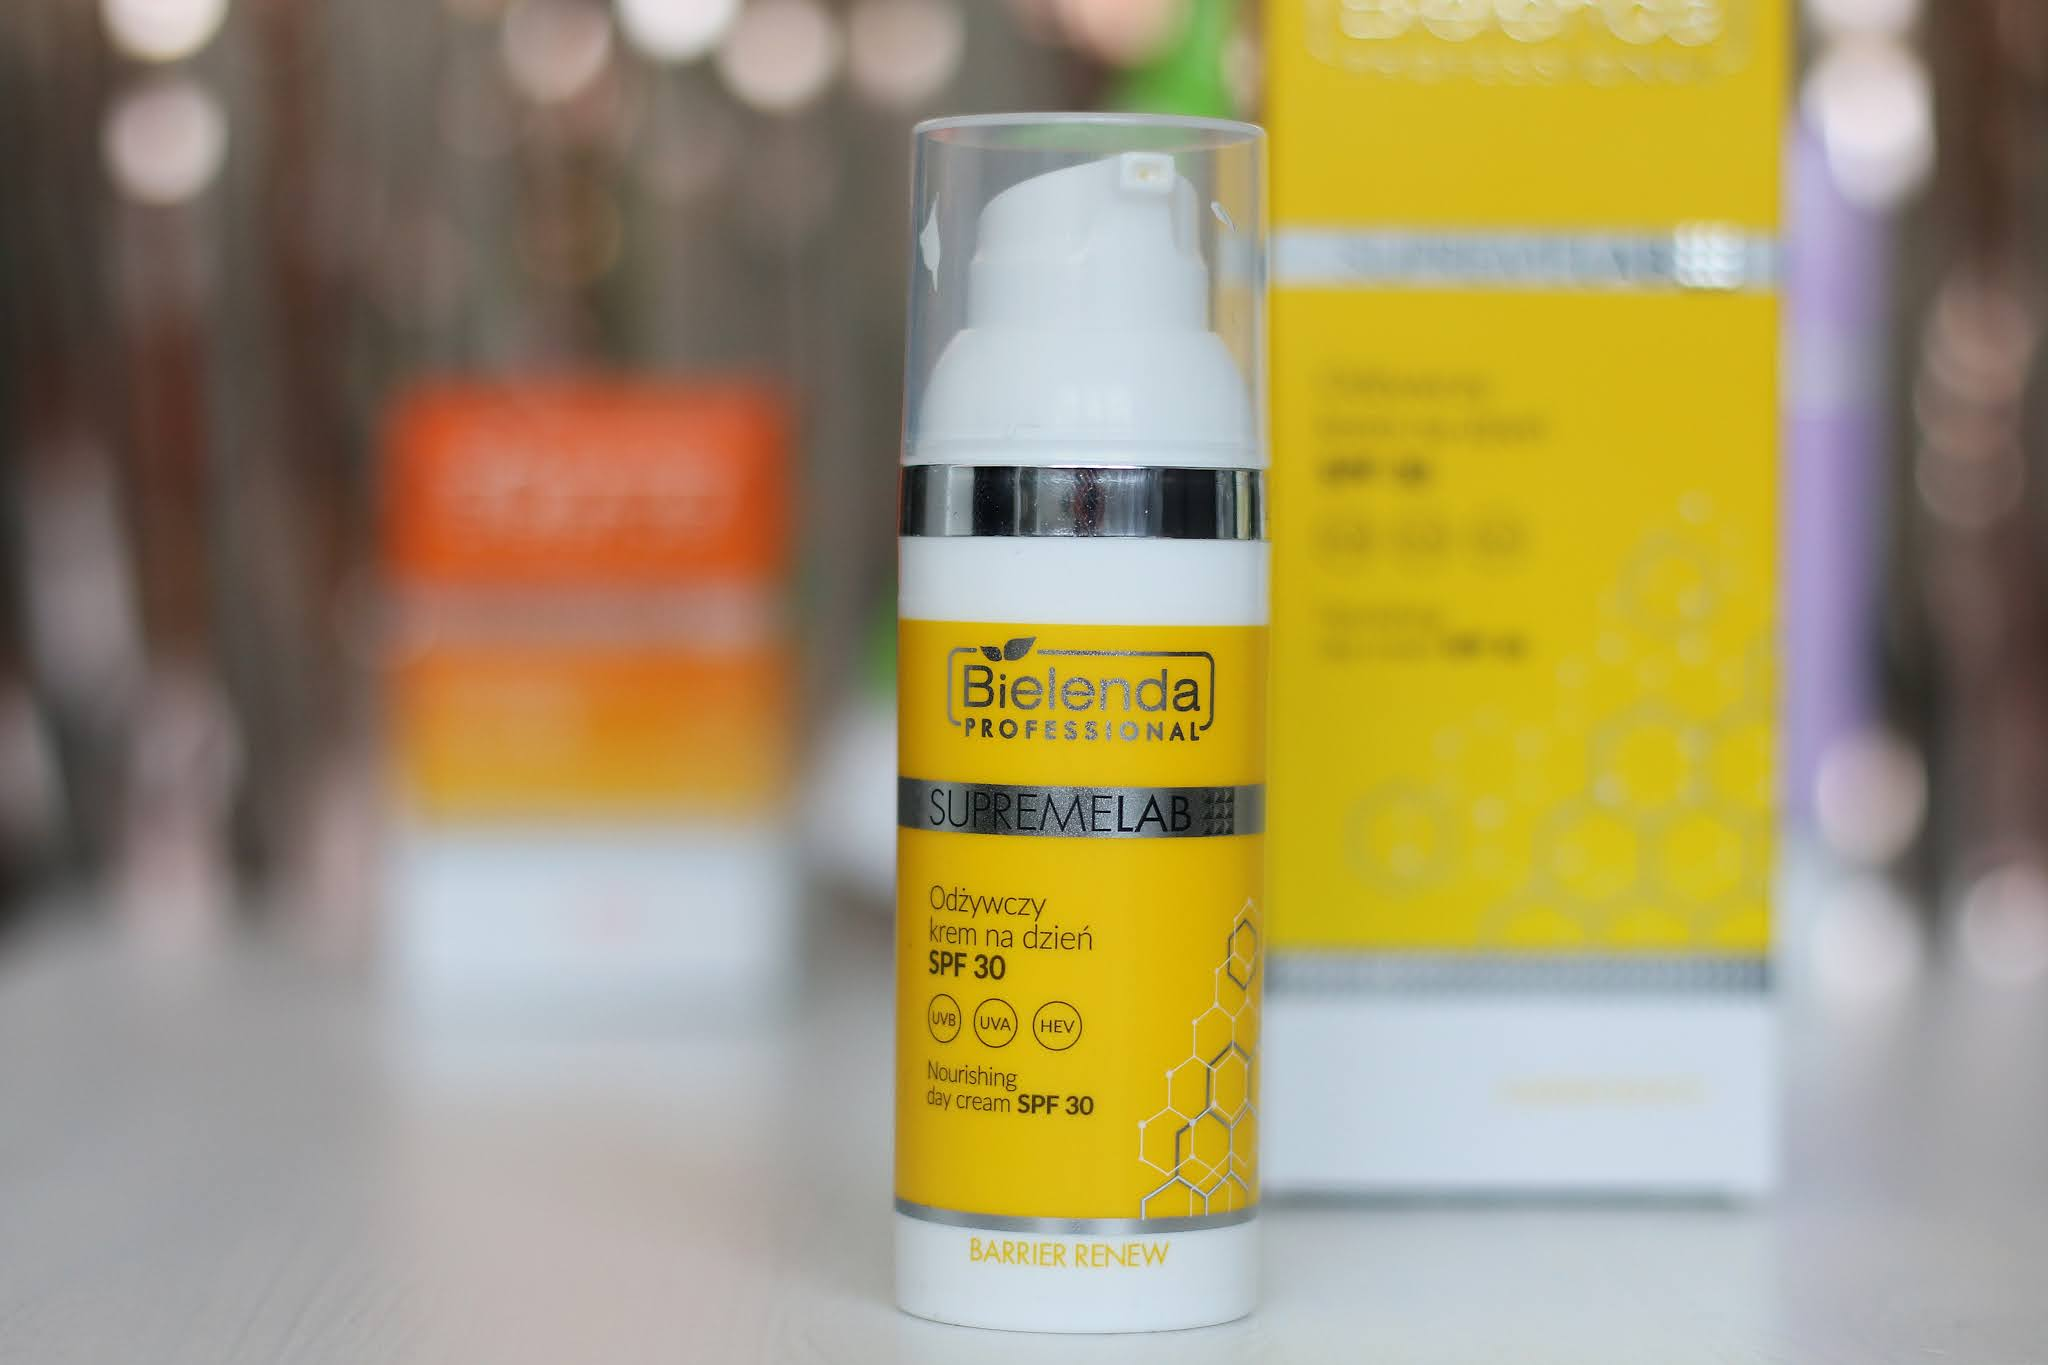 bielenda supremelab barrier renew spf30